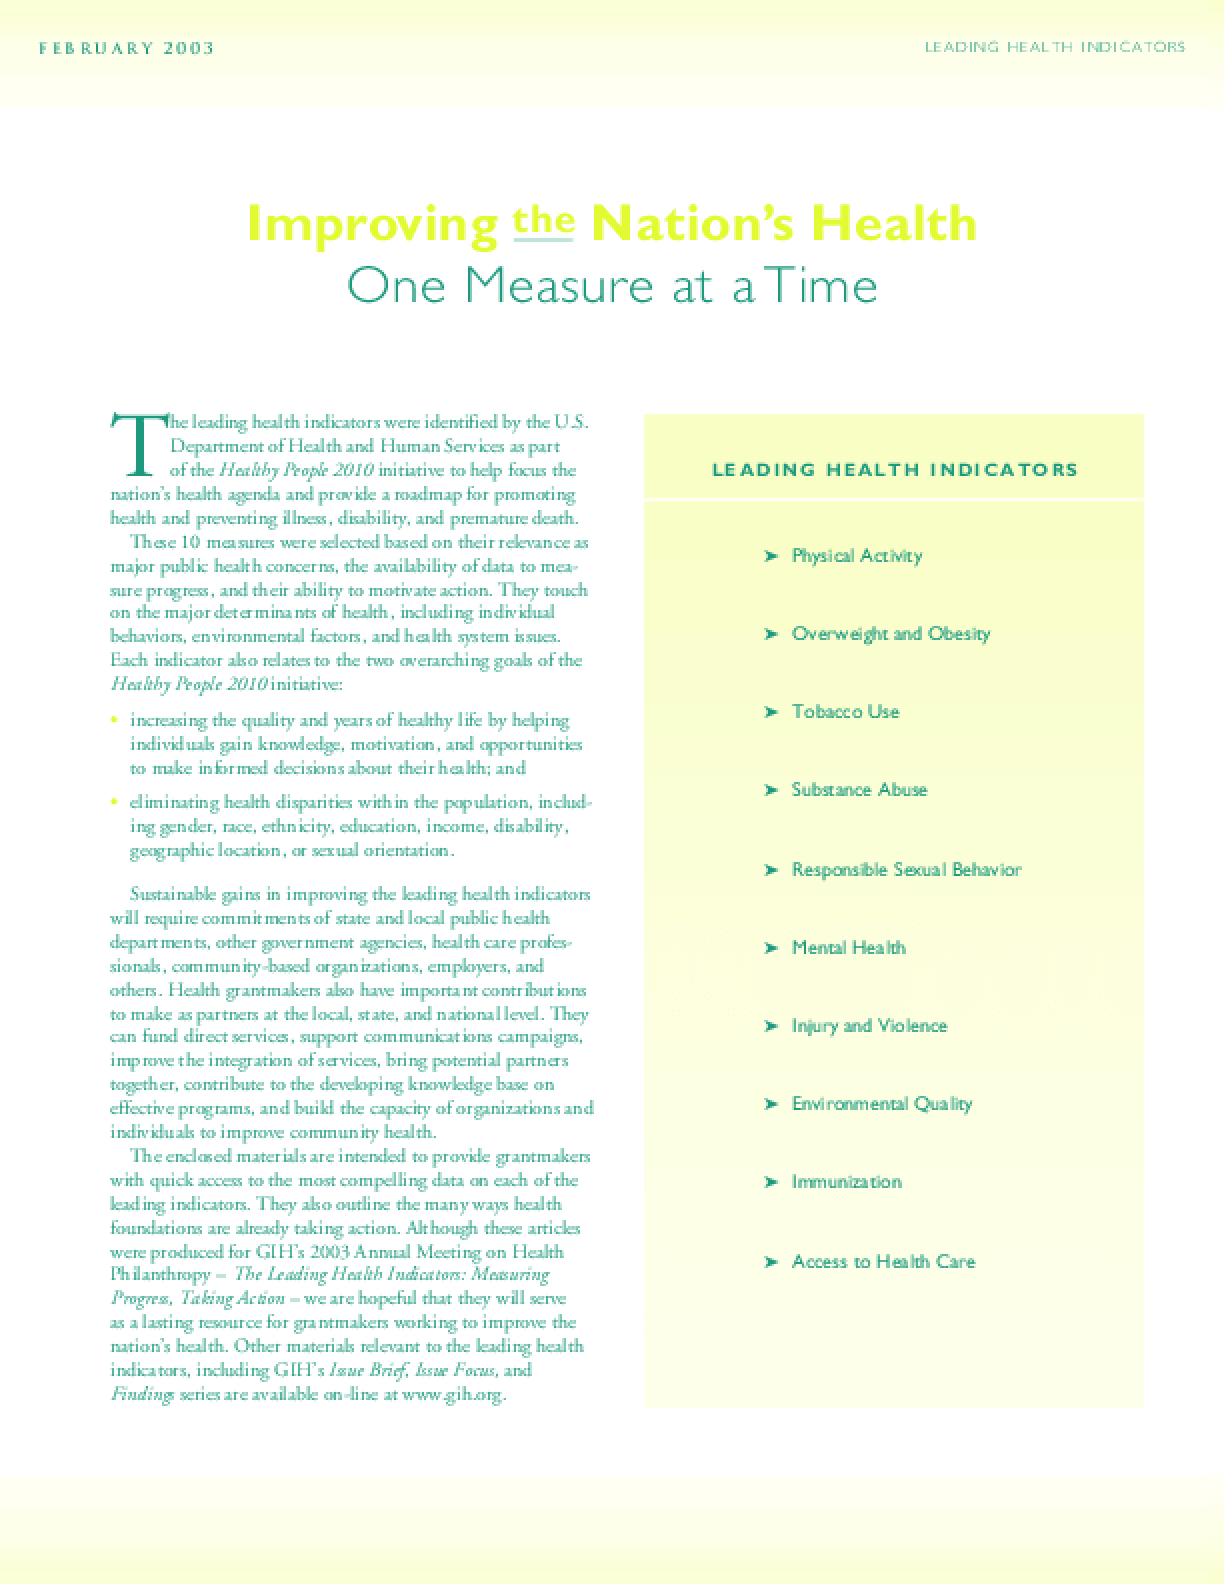 The Nation's Leading Health Indicators: Measuring Progress, Taking Action